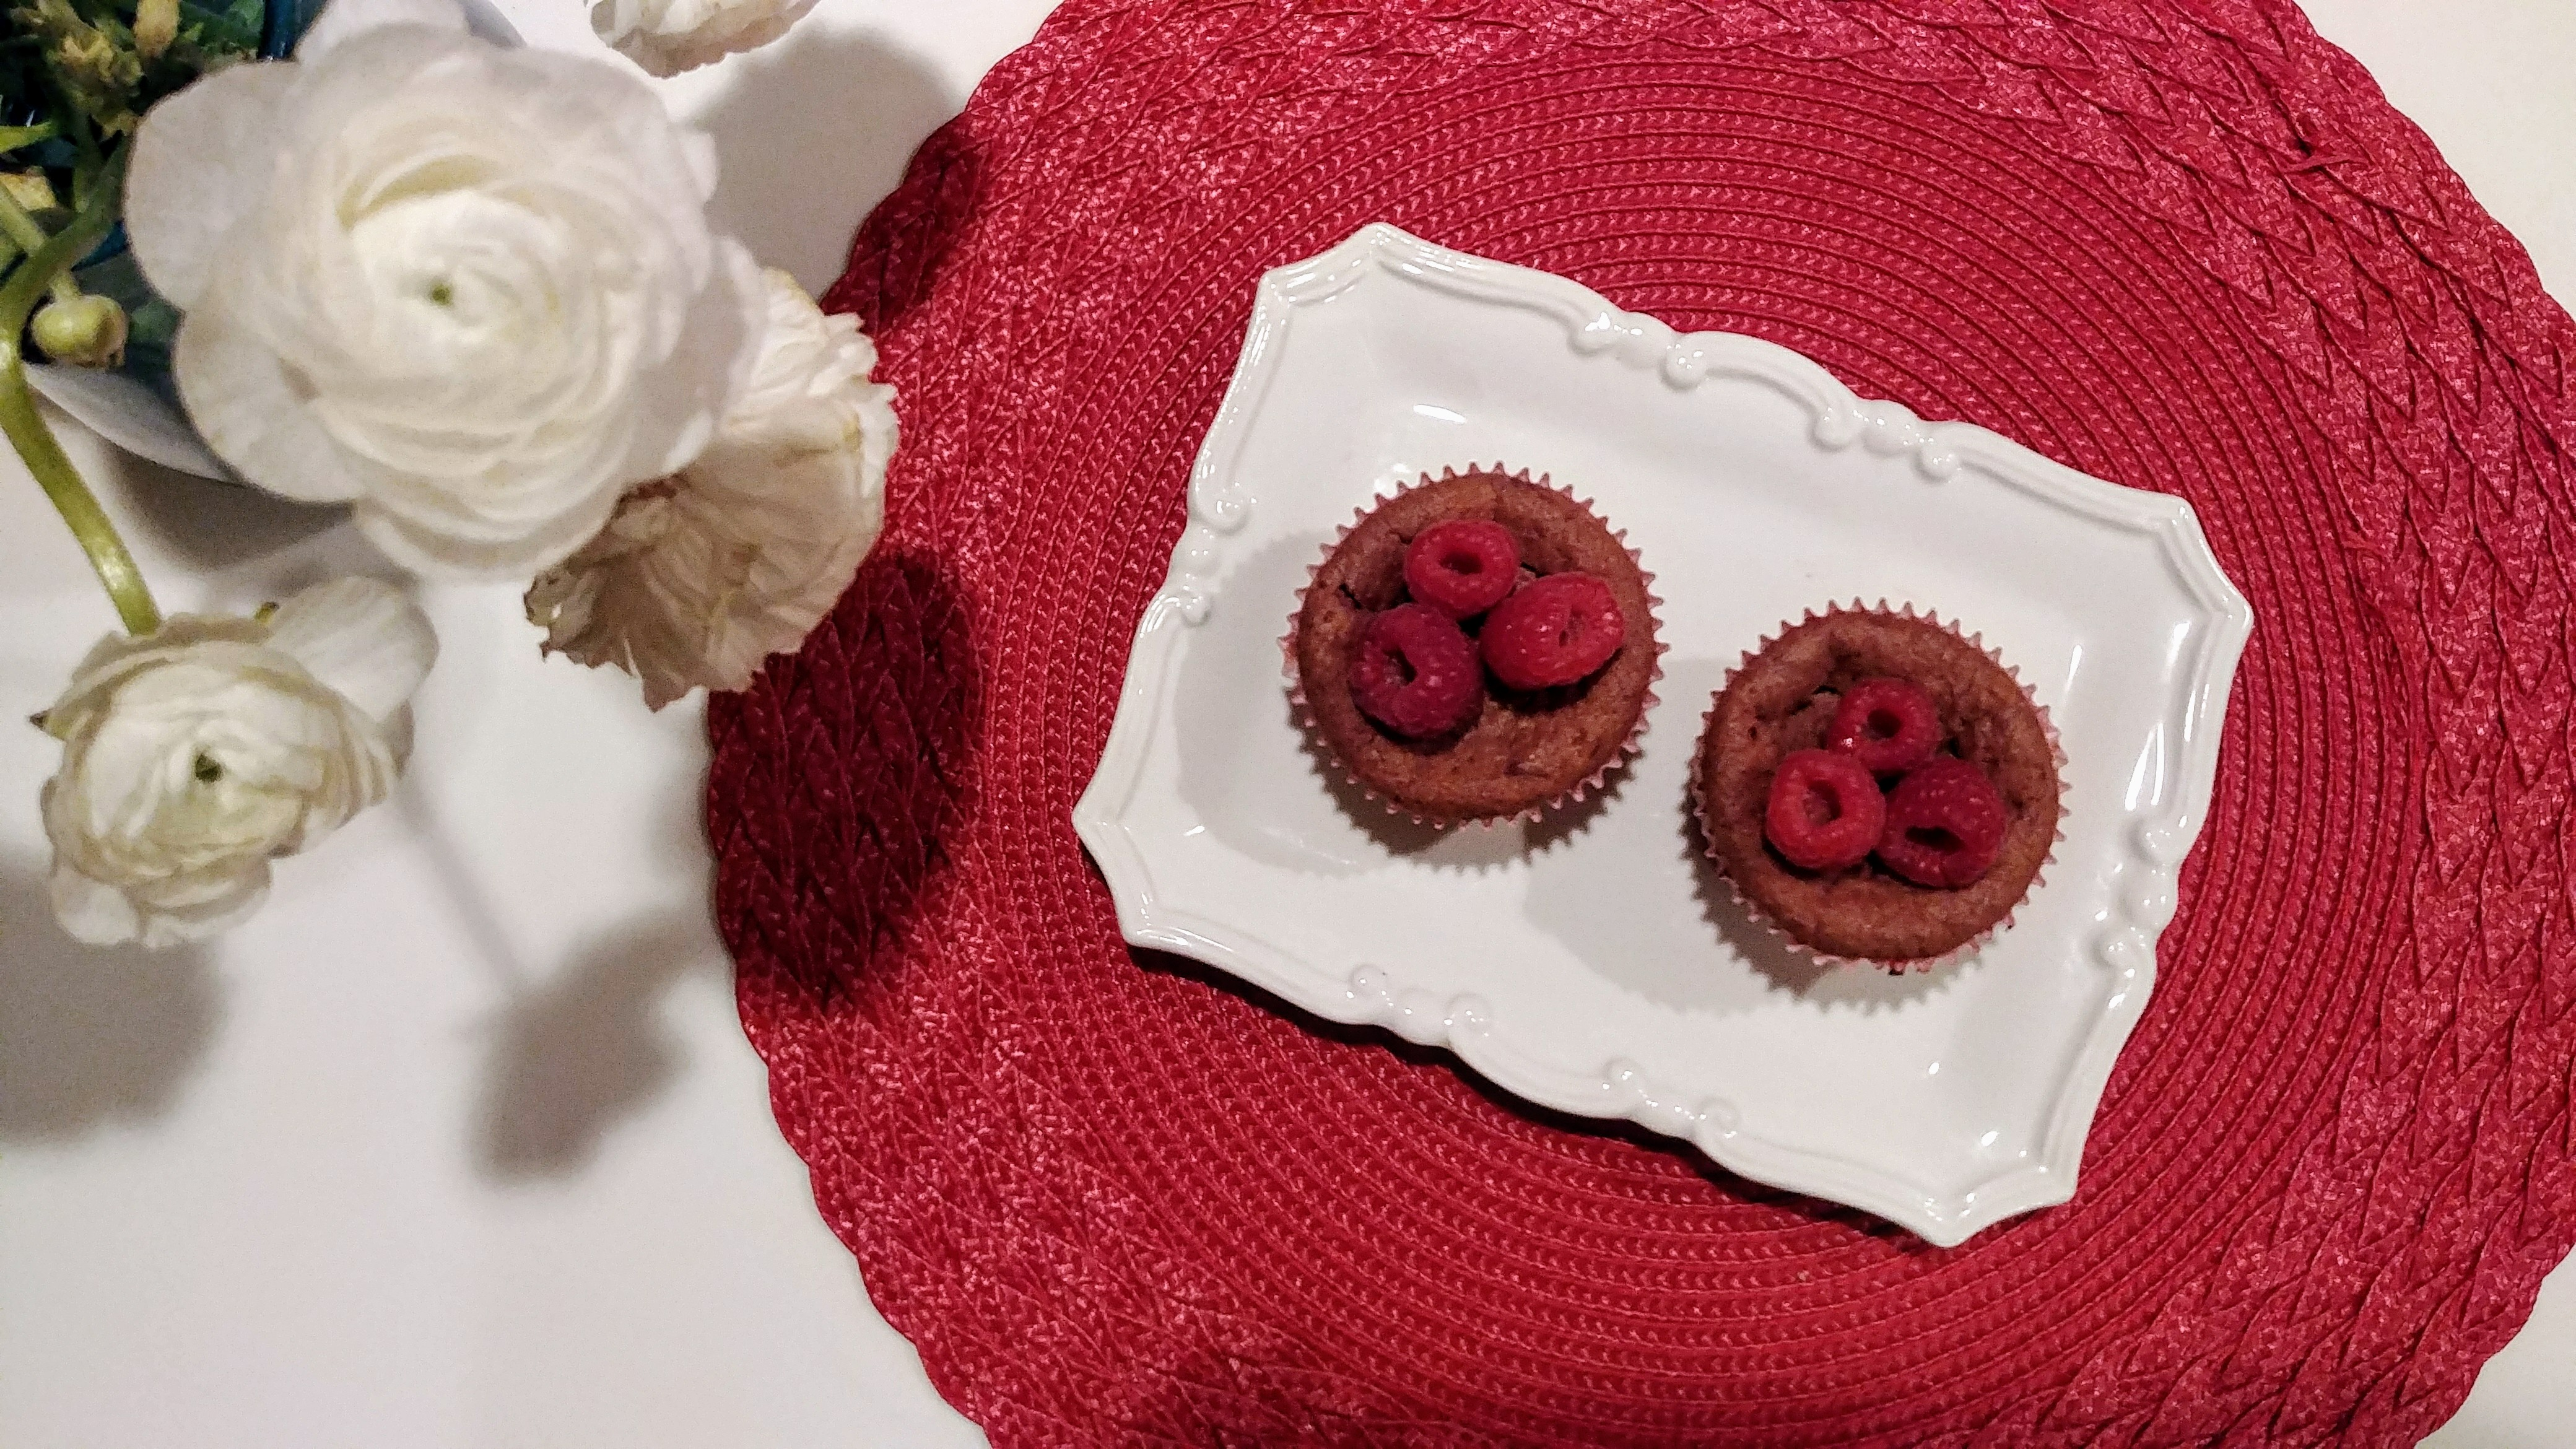 Raspberry Cupcakes topped with fresh raspberries next to white flowers on table